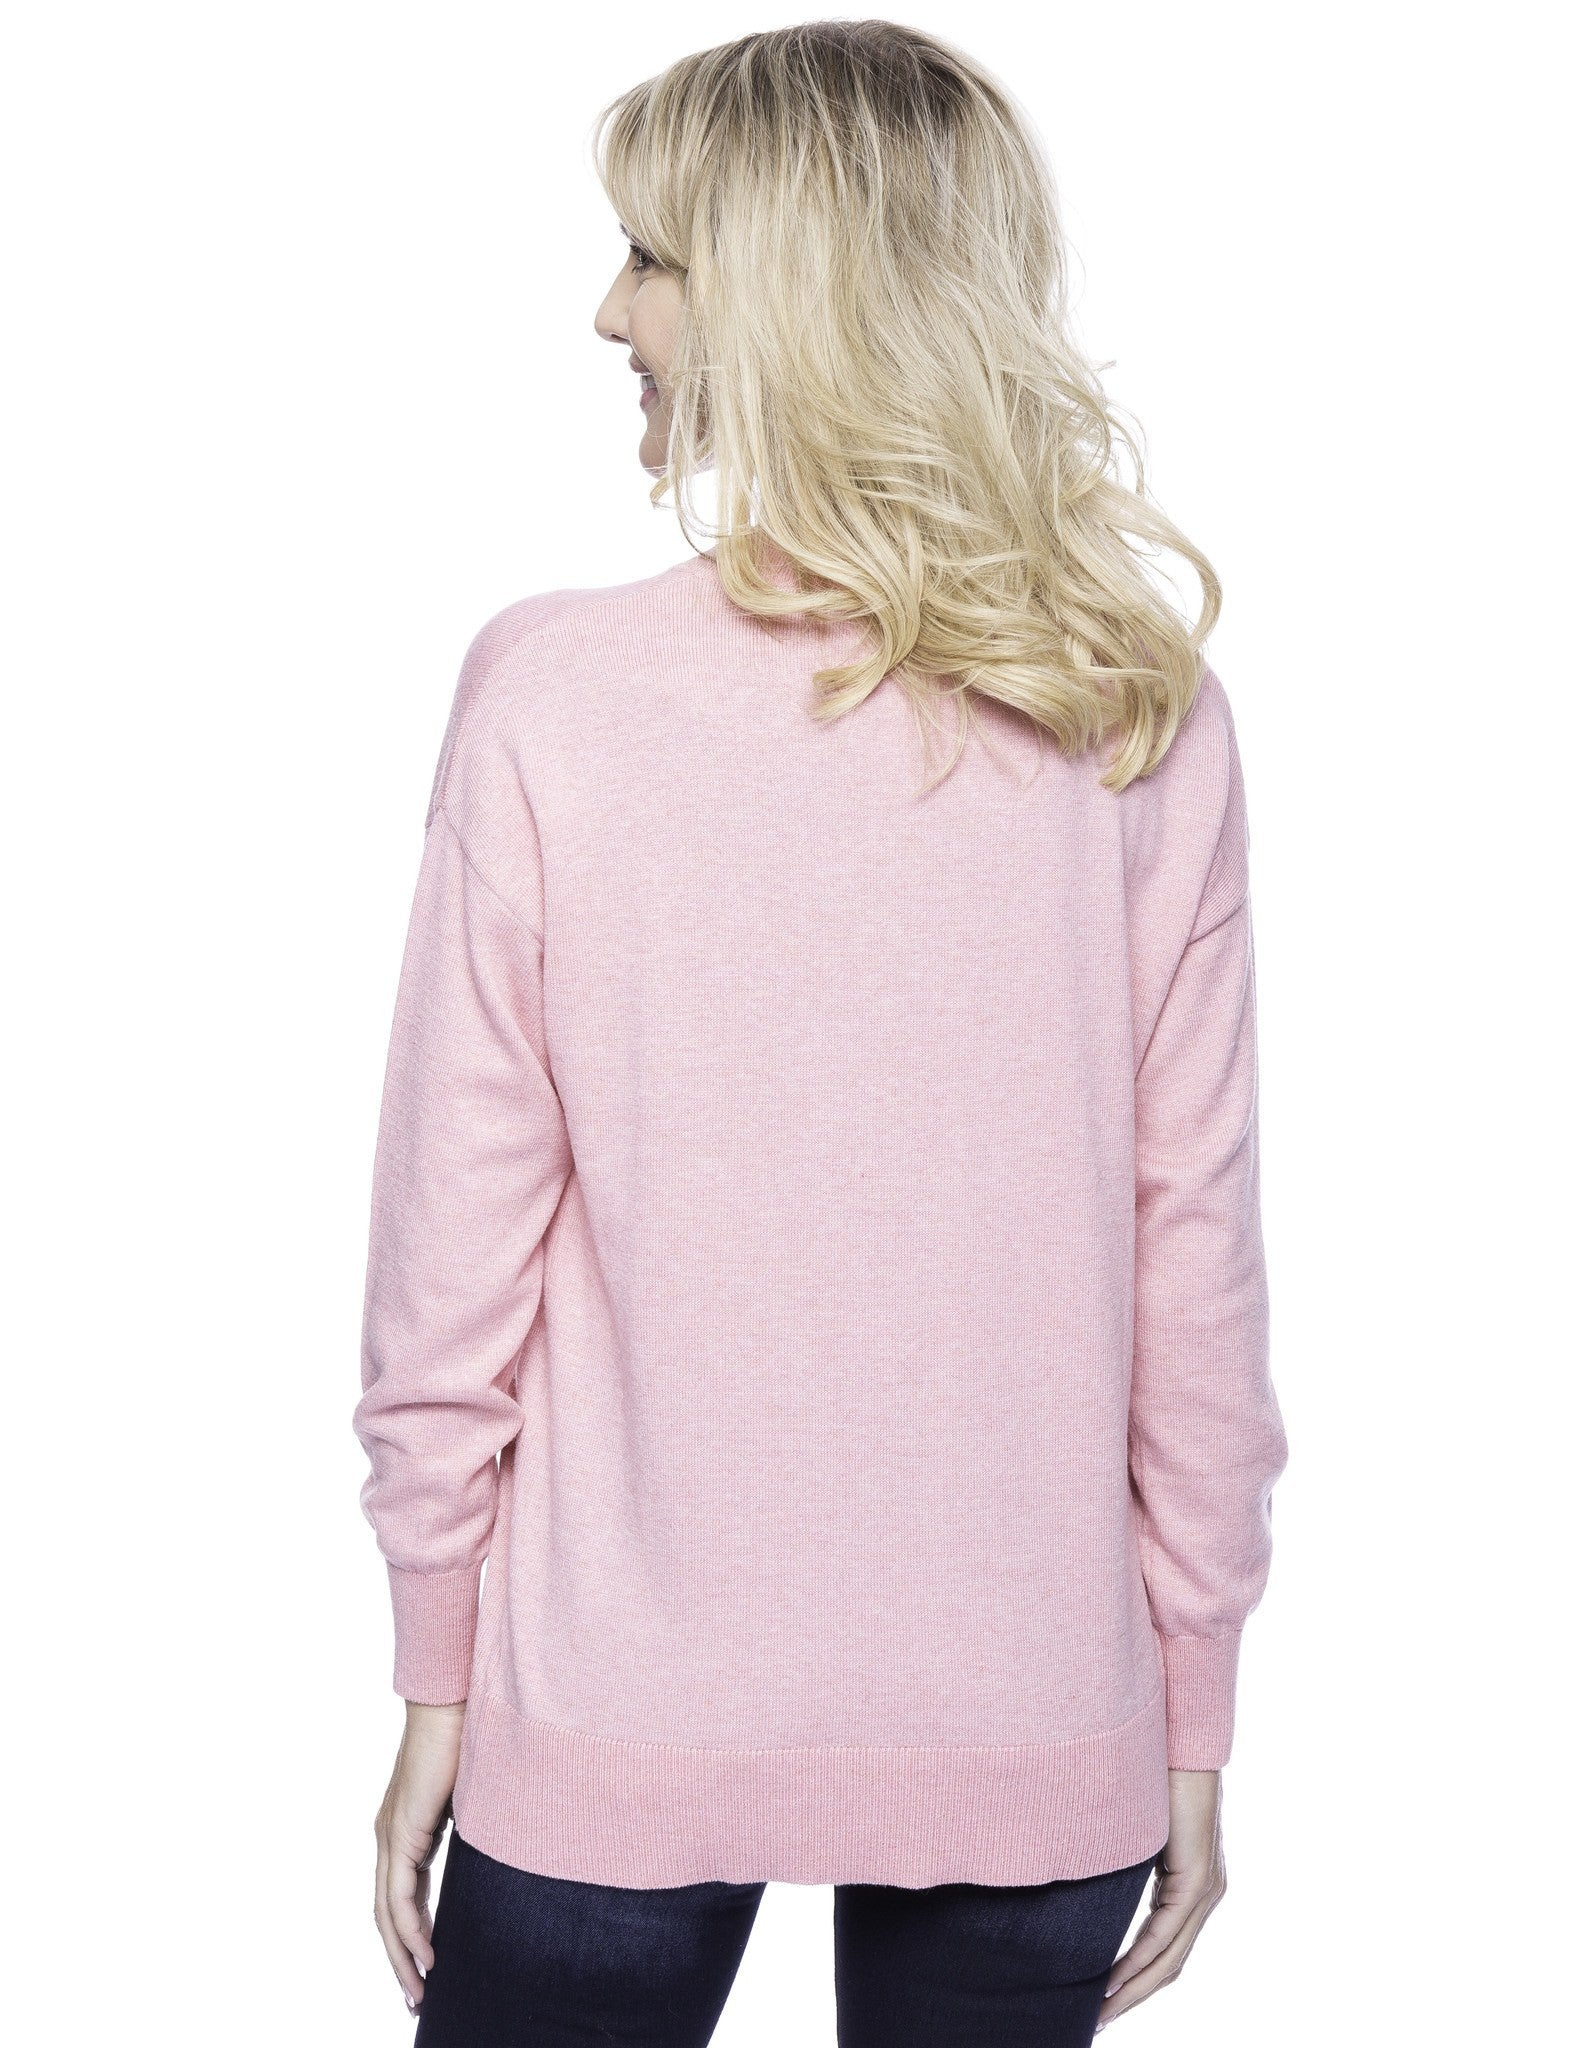 Tocco Reale Women's Cashmere Blend Deep V-Neck Sweater - Pink